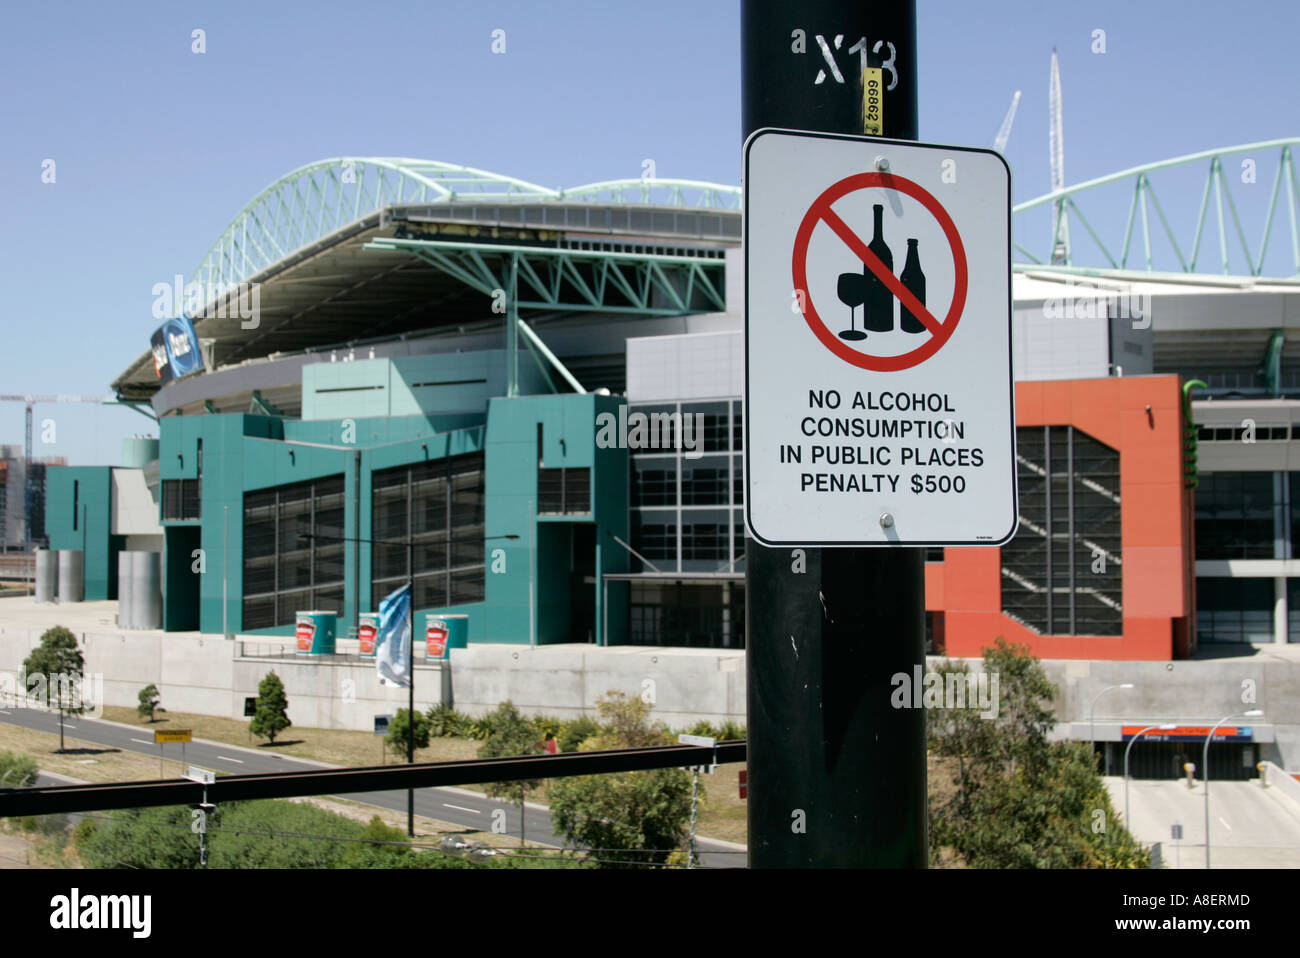 No Alcohol Consumption In Public Places sign near the Telstra Dome stadium in Melbourne,Australia. - Stock Image